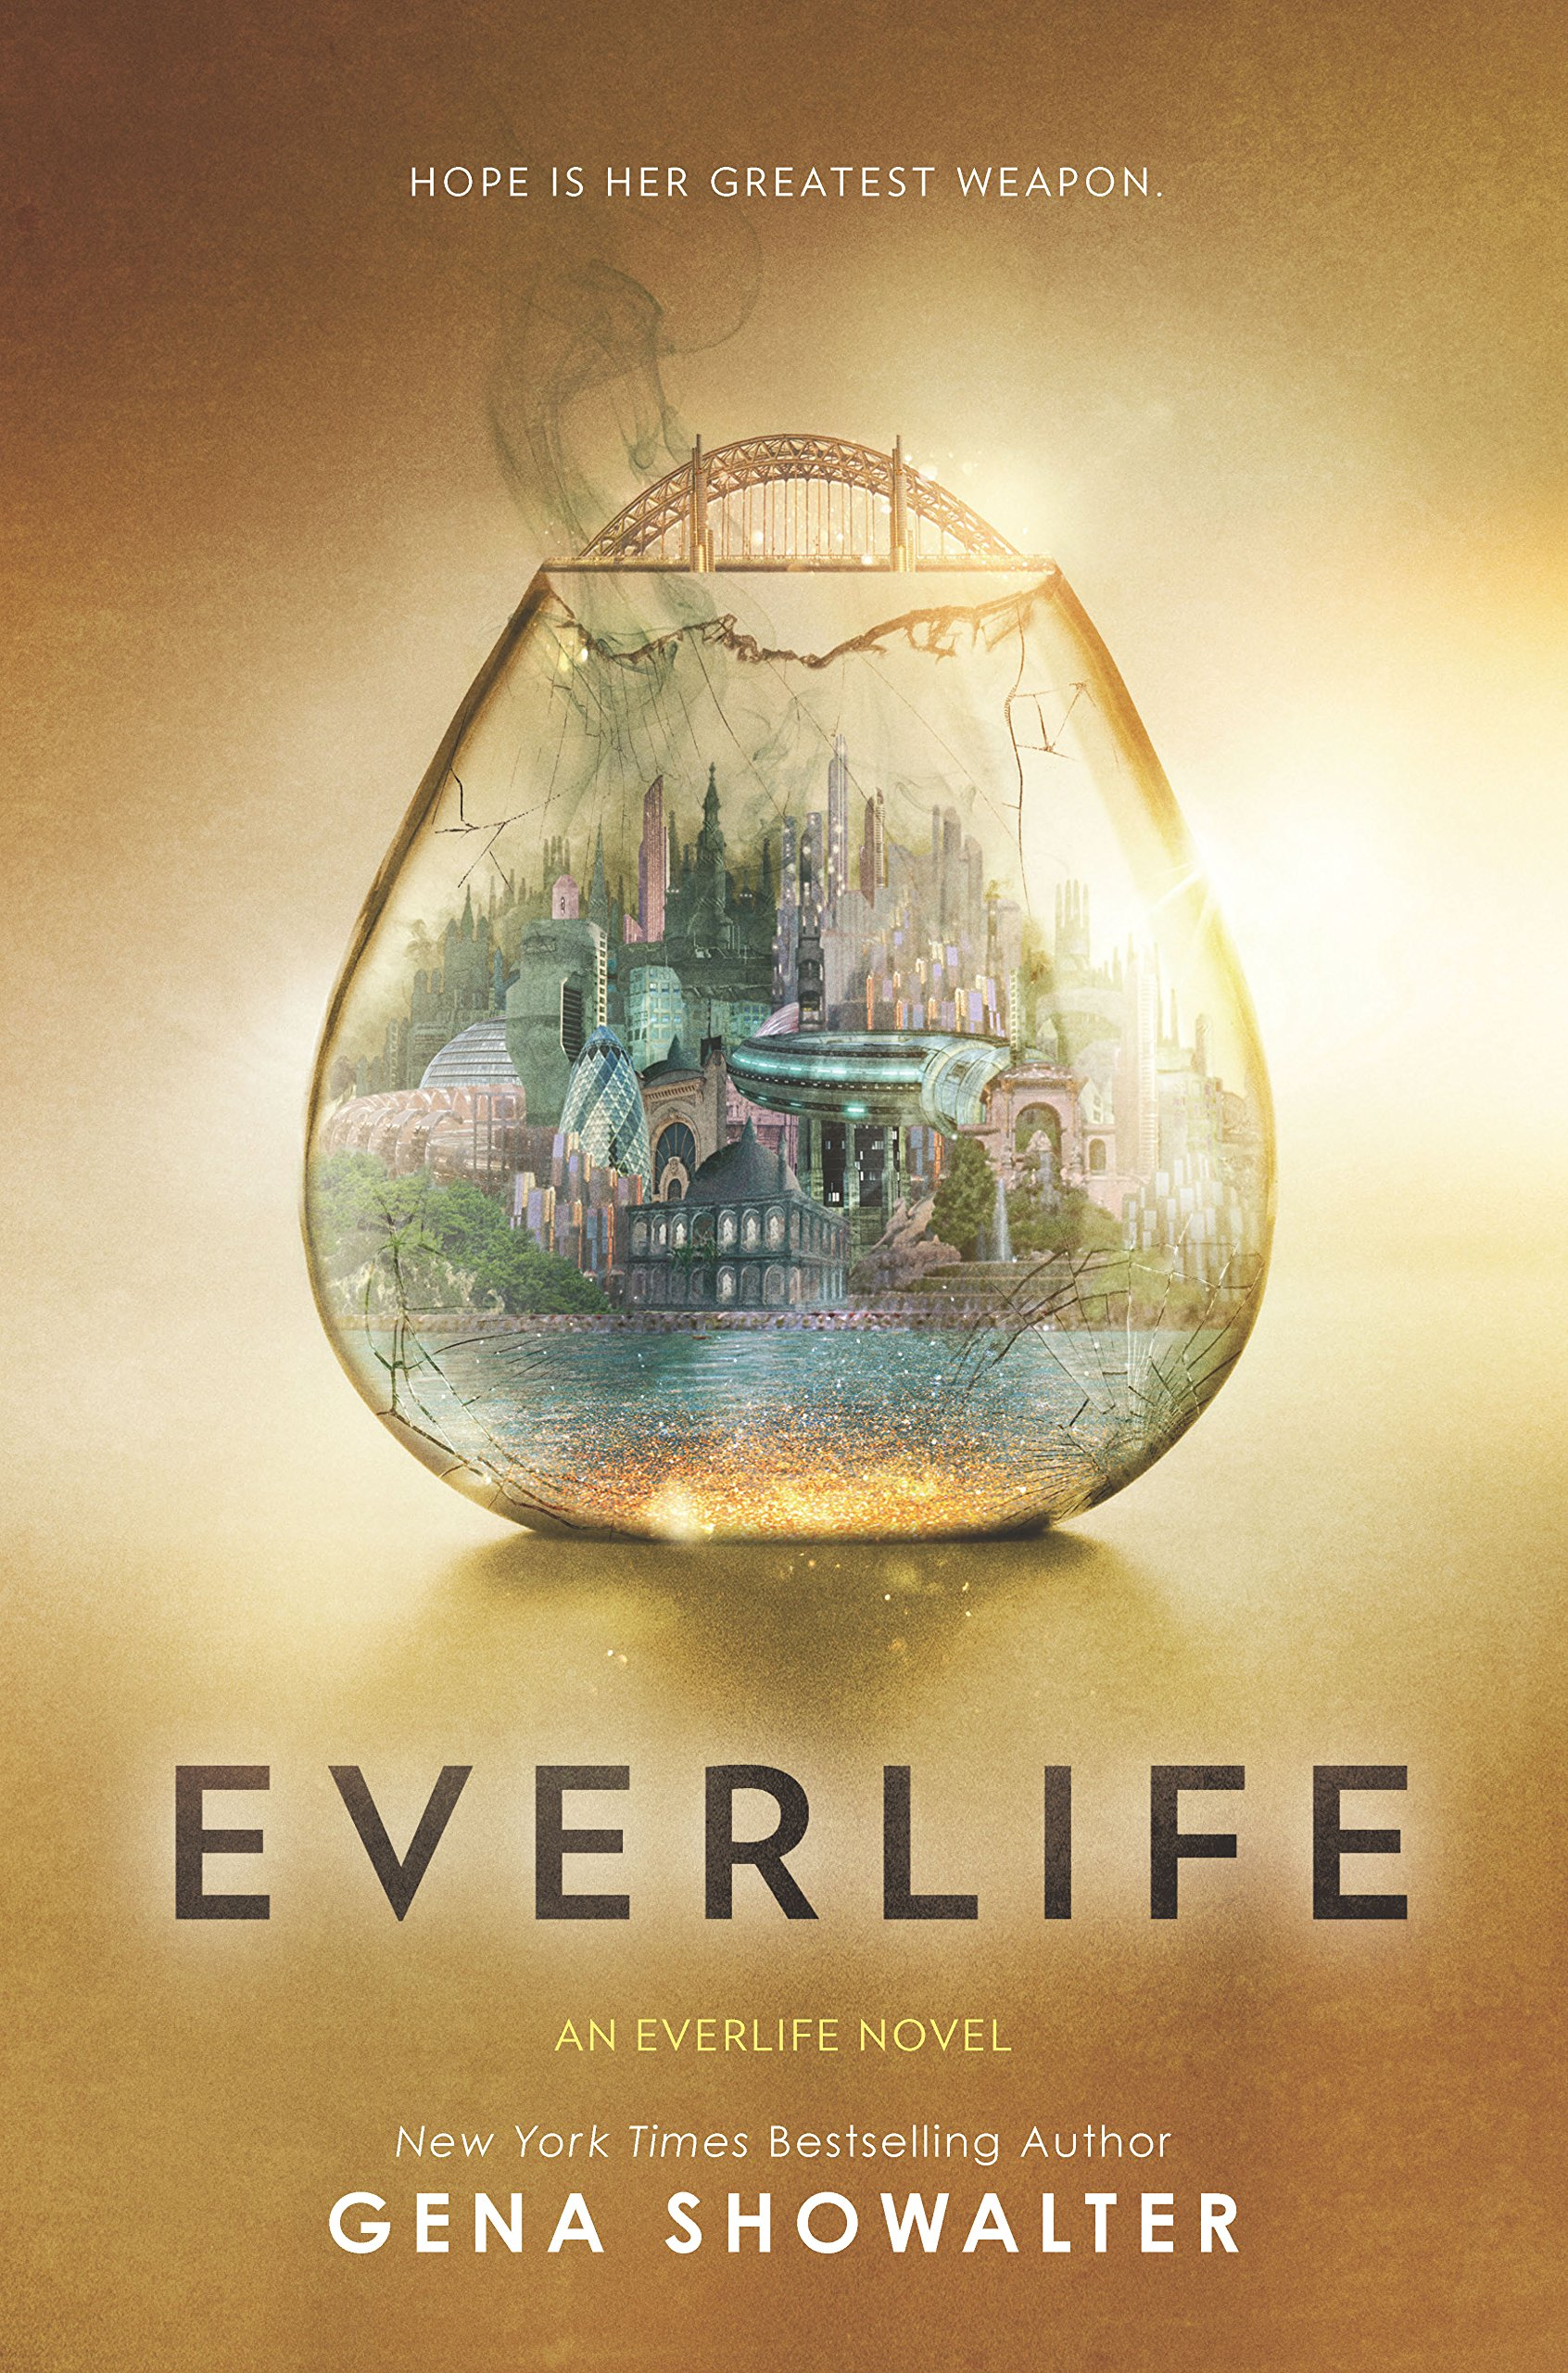 Everlife (An Everlife Novel)